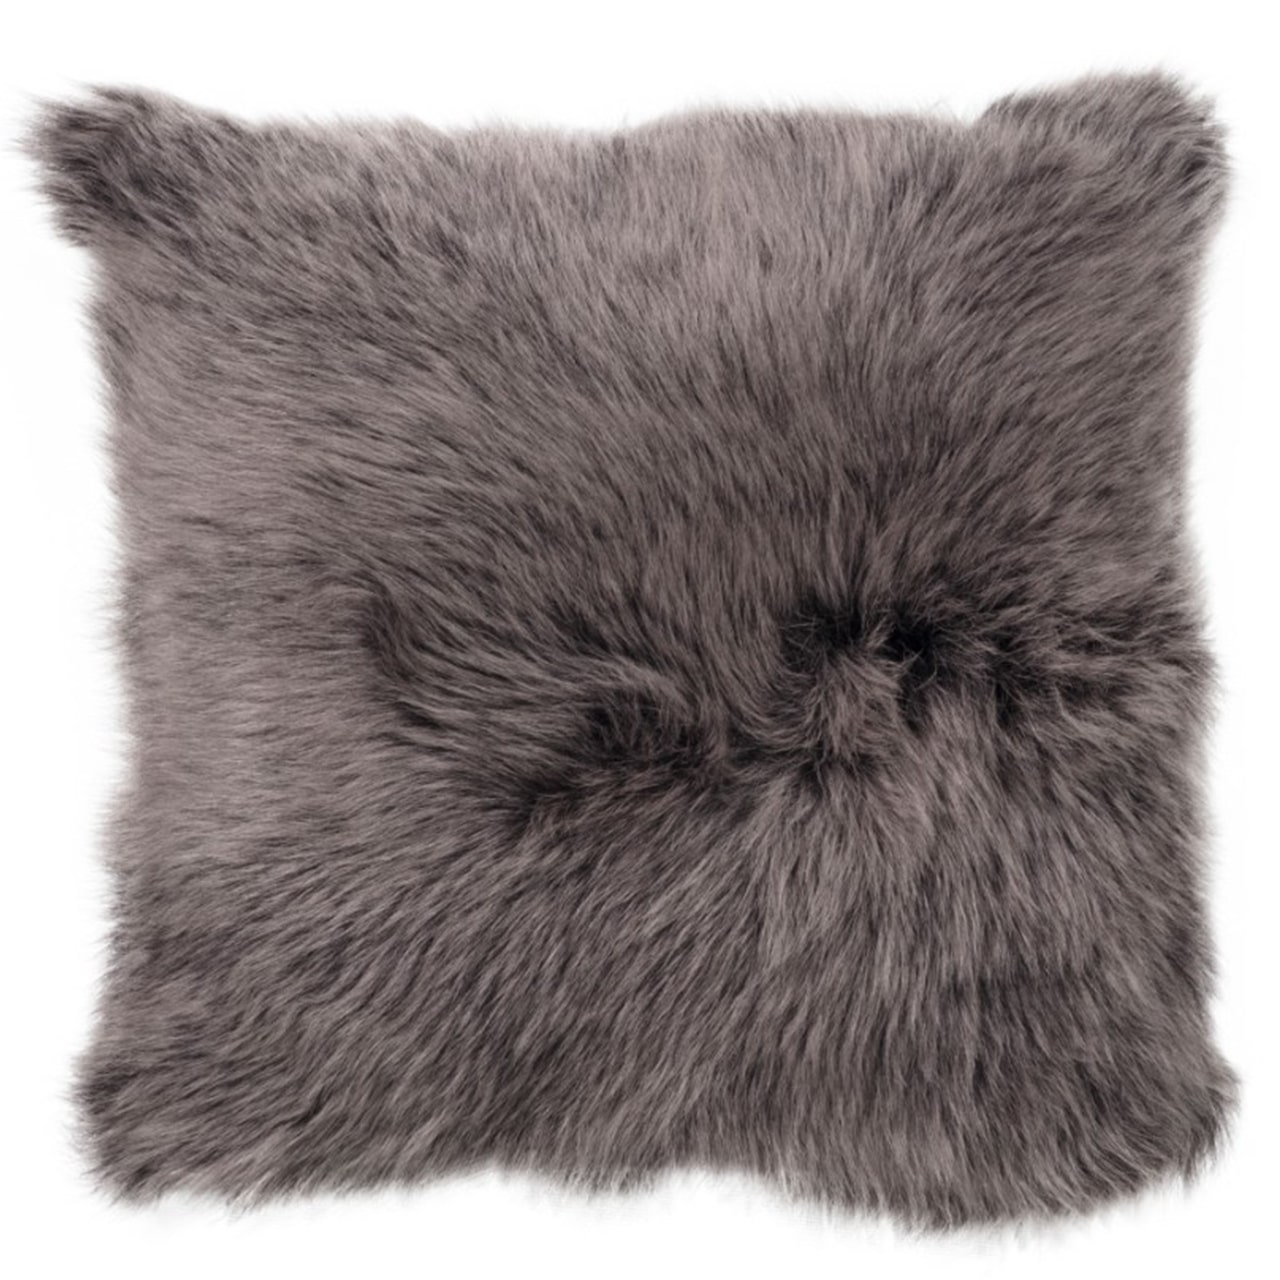 NEW-Shearling Pillow- EHB- 45X45cm (SPEHBBR4545) - ANVOGG FEEL SHEARLING | ANVOGG